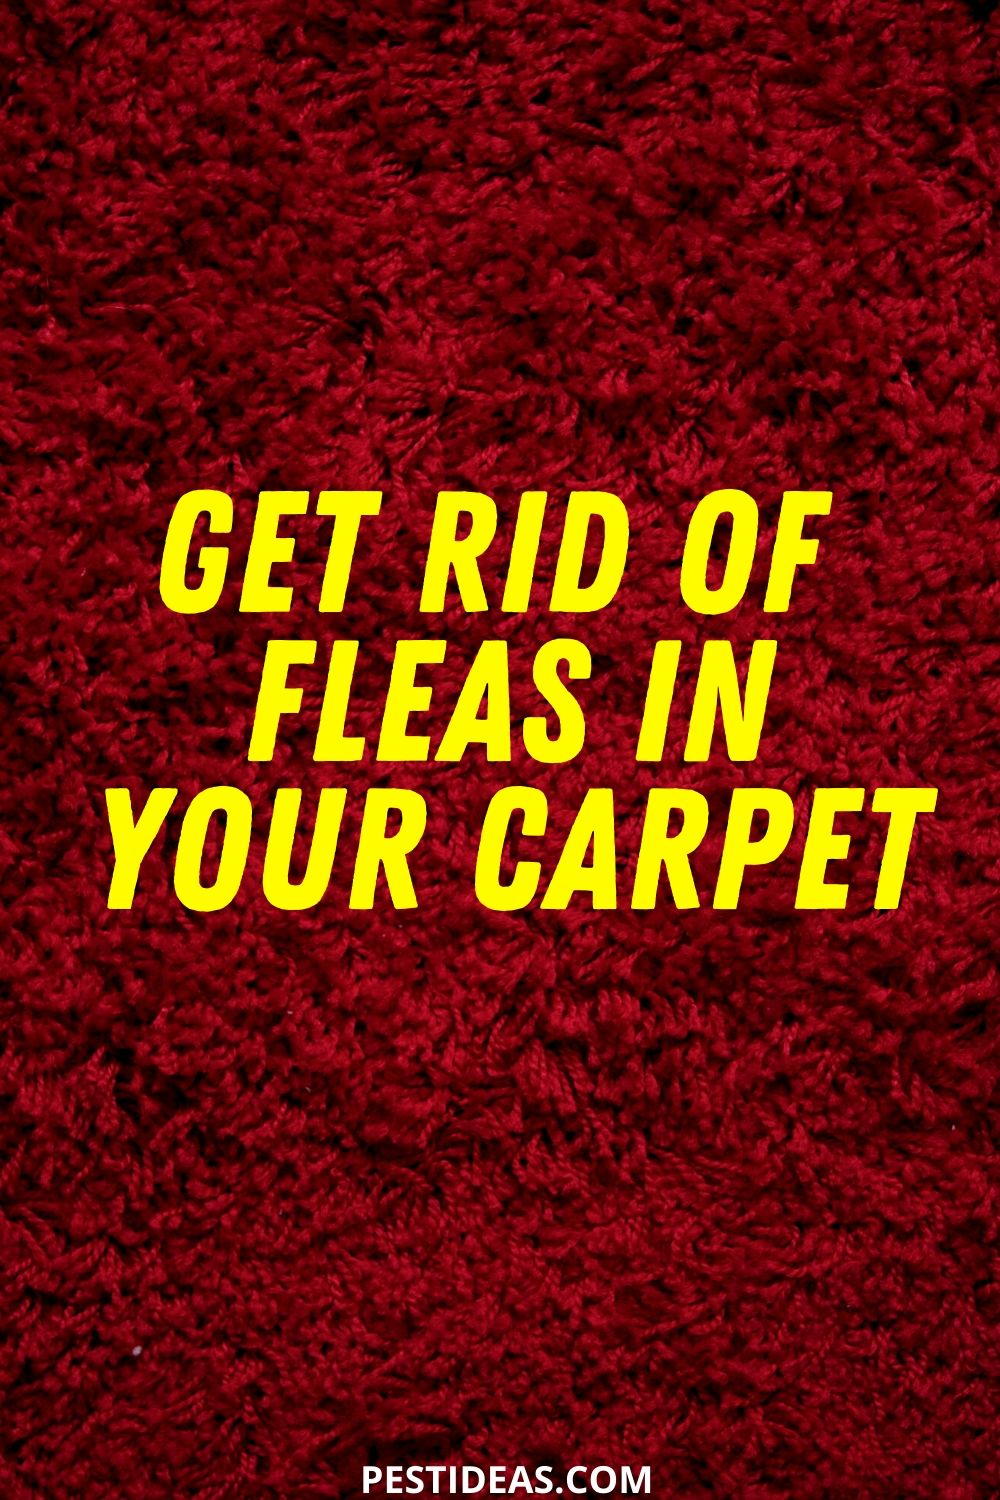 Get Rid of Fleas in Your Carpet